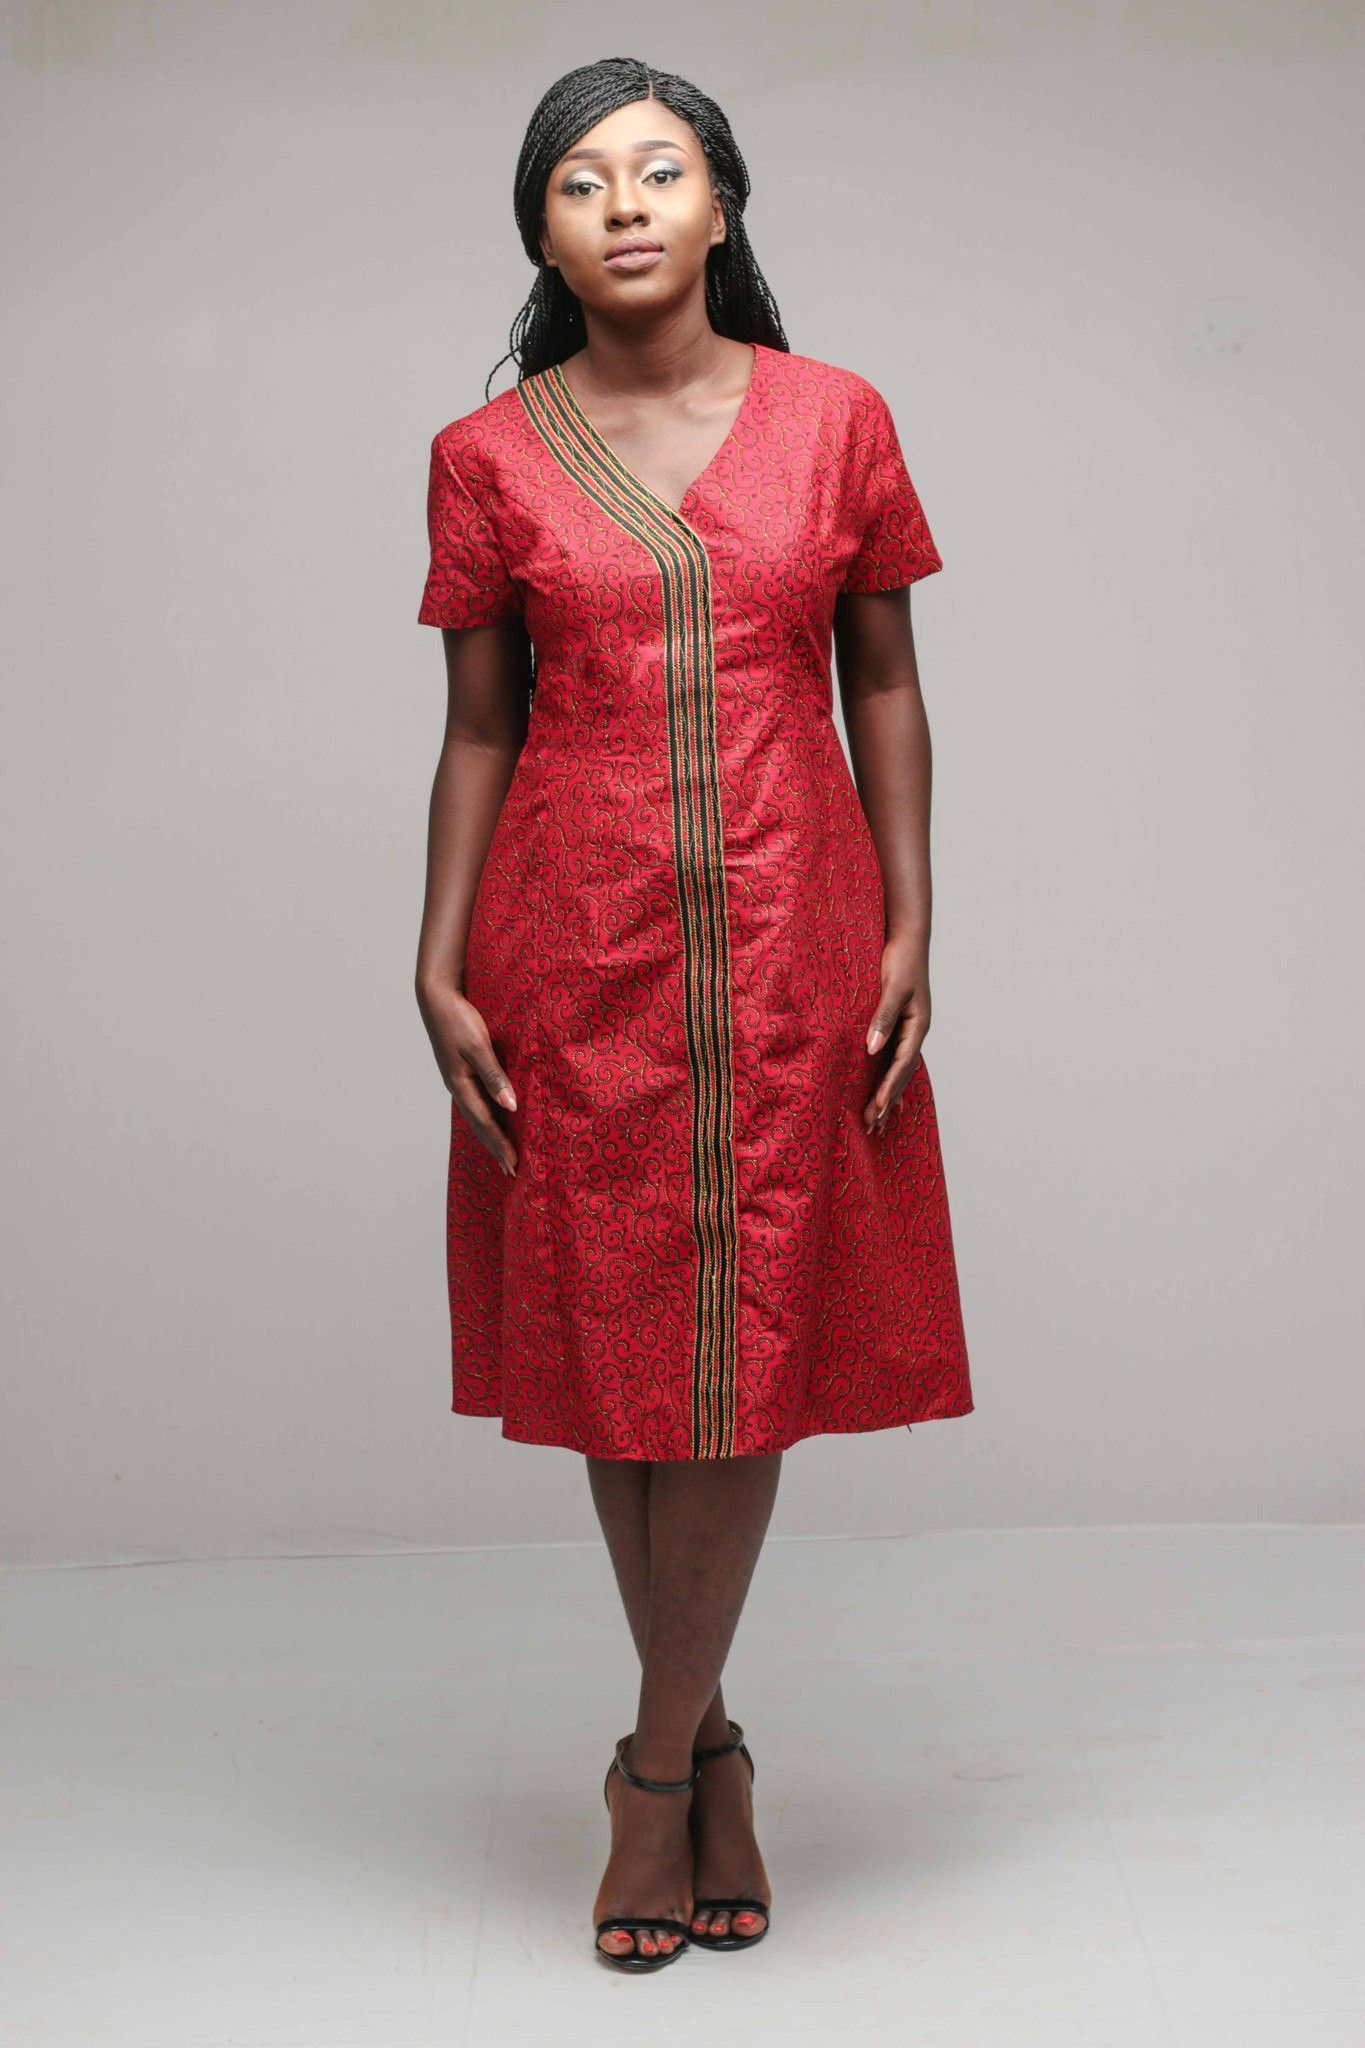 935756b93b4 Burgundy African Print A-line Dress for Women | afro cloth | Dresses ...